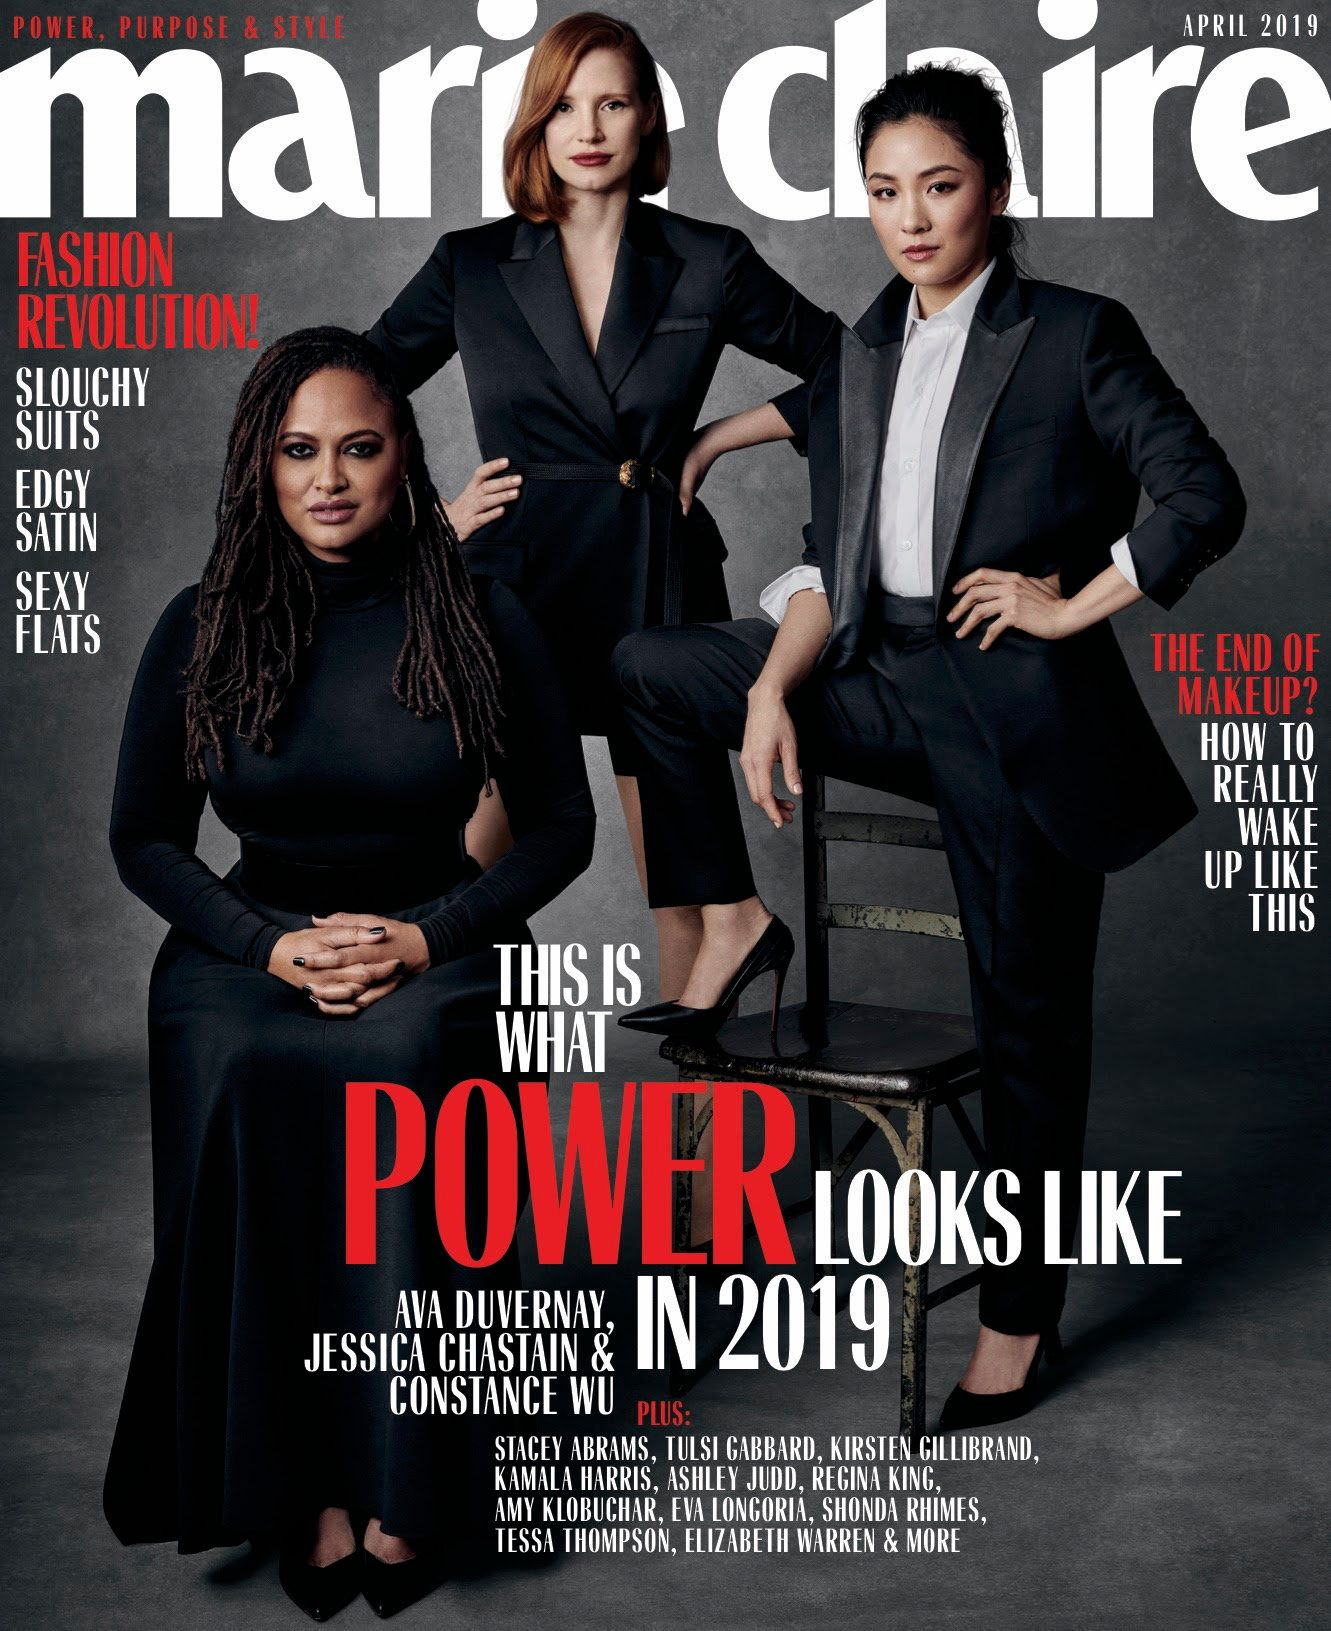 Ava DuVernay, Constance Wu and Jessica Chastain Fight For Hollywood